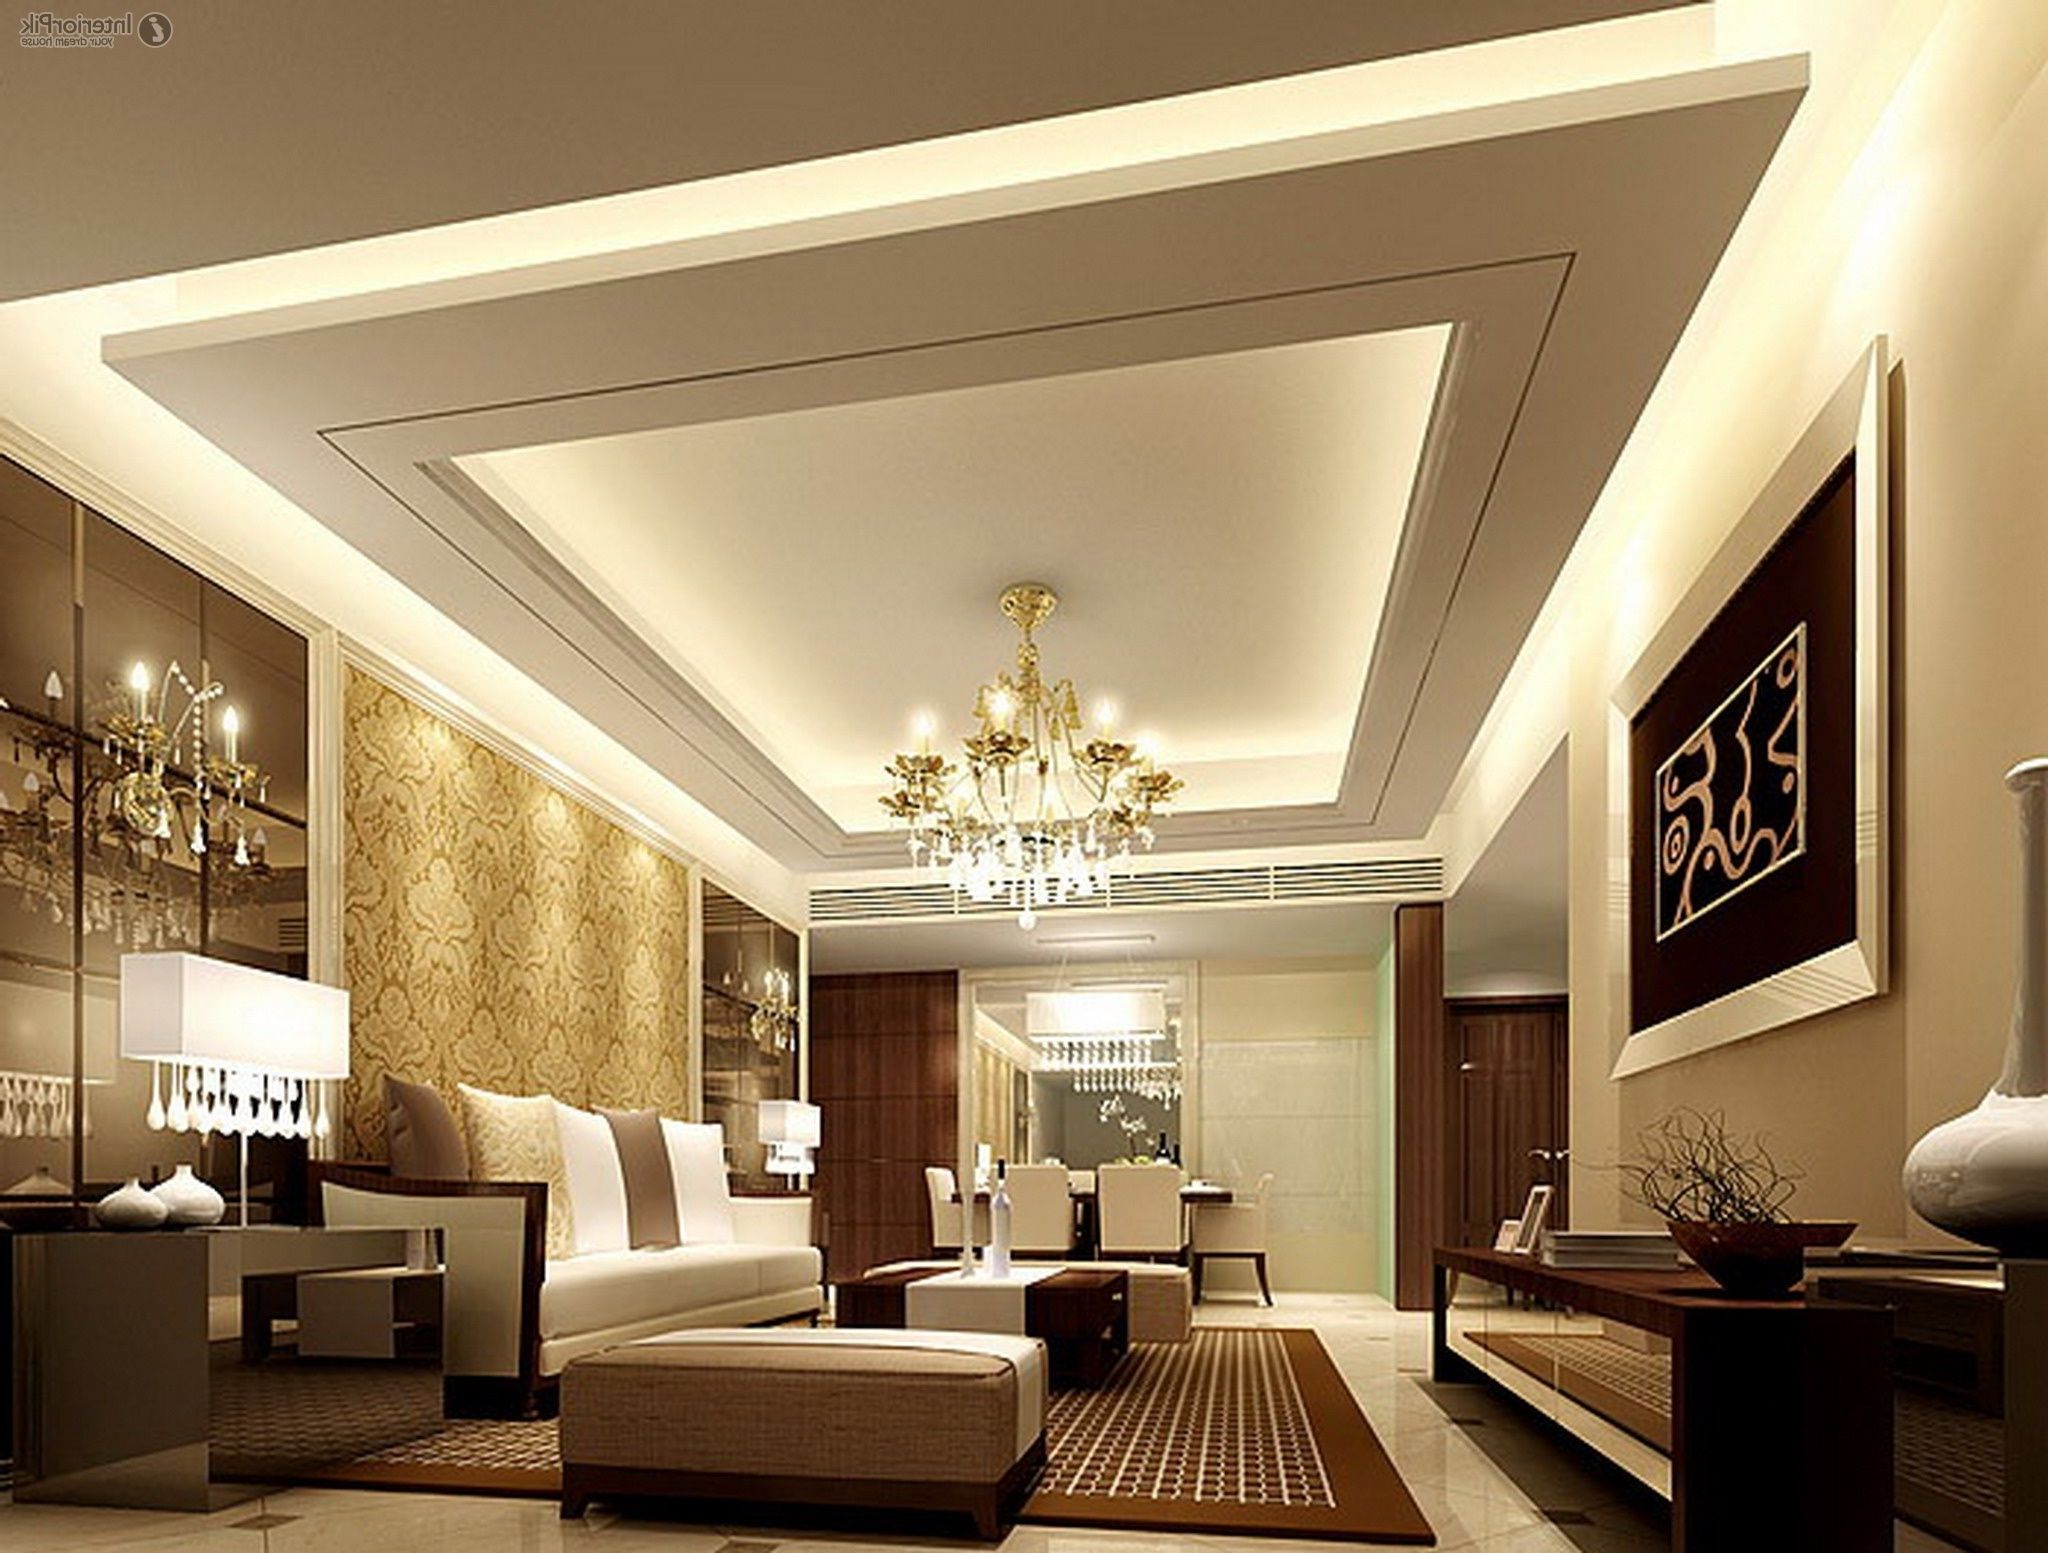 Gypsum Ceiling Design For Living Room Lighting Home Decorate Best Extraordinary Ceiling Designs For Living Rooms Design Ideas